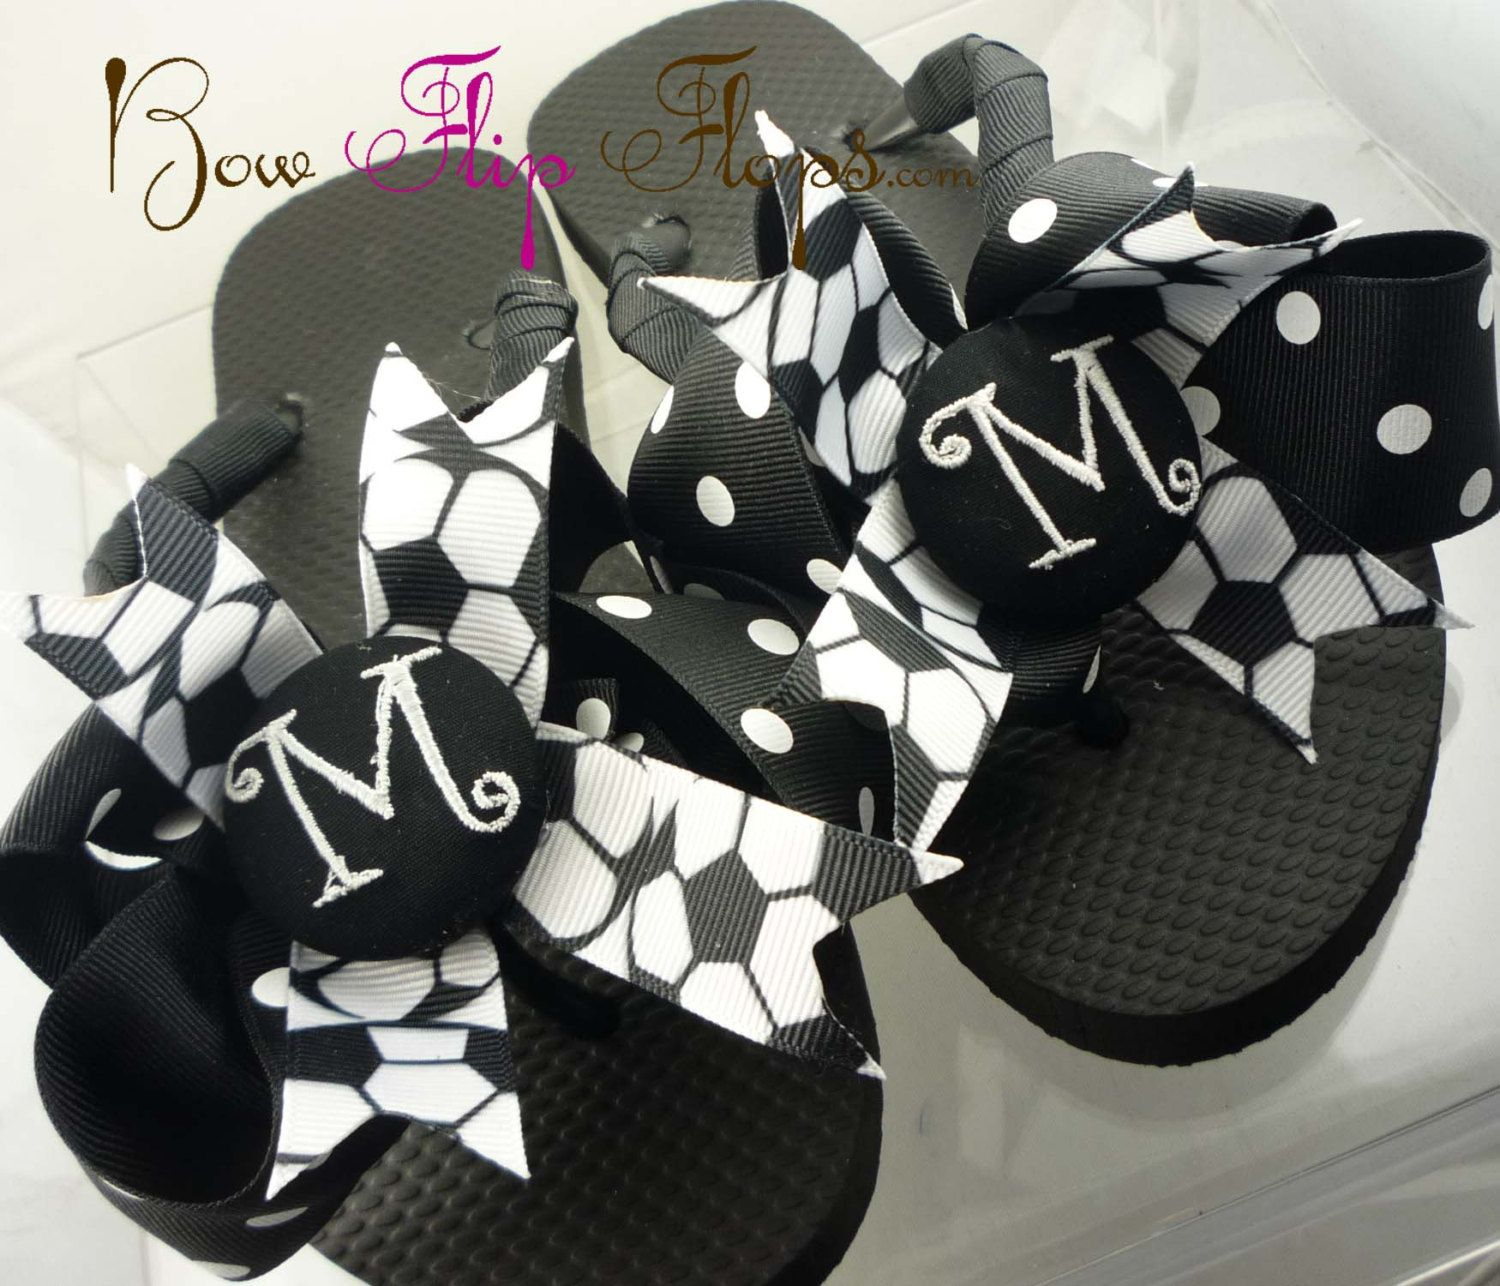 20c65d5935fc88  Amy Lyons Lyons Mendoza We finally mking some for ourselves  LOL! Soccer  Flip Flops Bow Number Personalized Monogrammed Mom